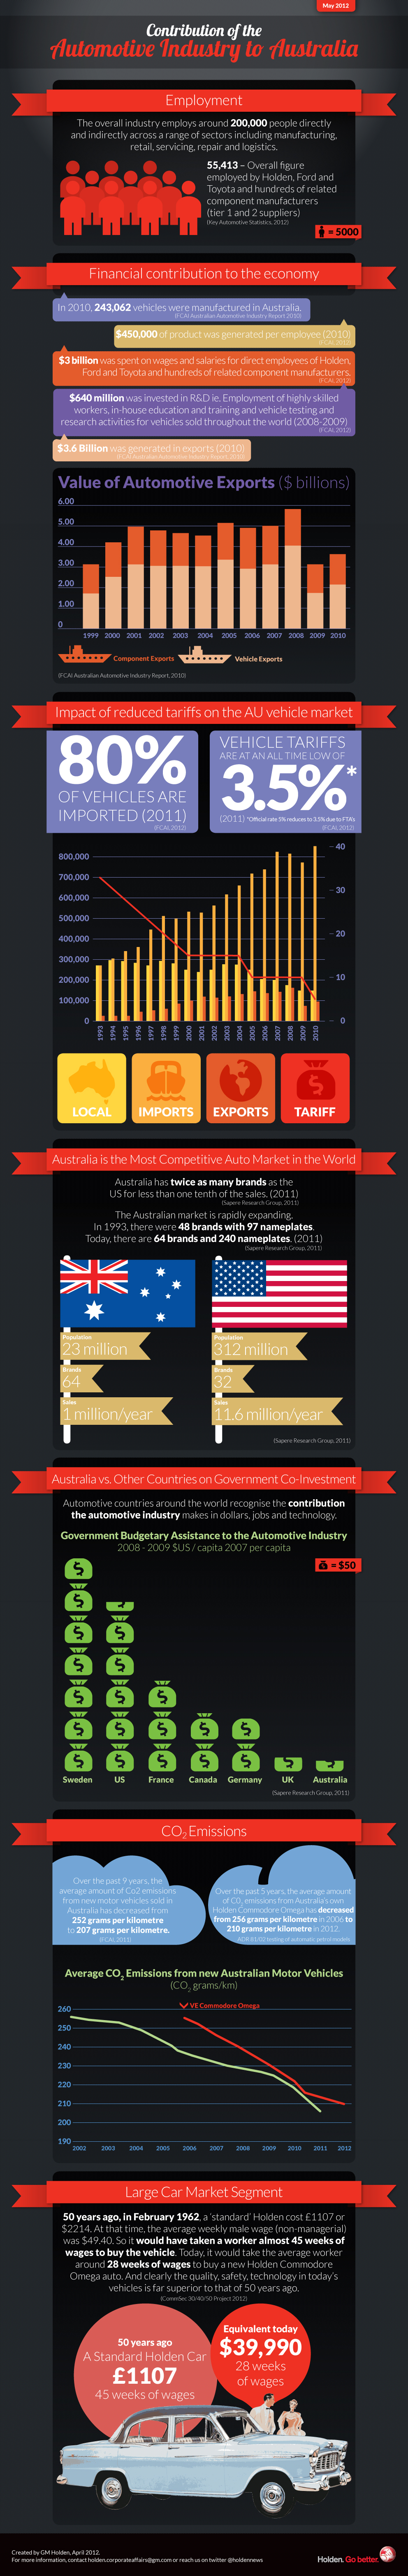 Infographic On The Role Of The Auto Industry To Australia With Images Automobile Industry Automotive Industry Australia